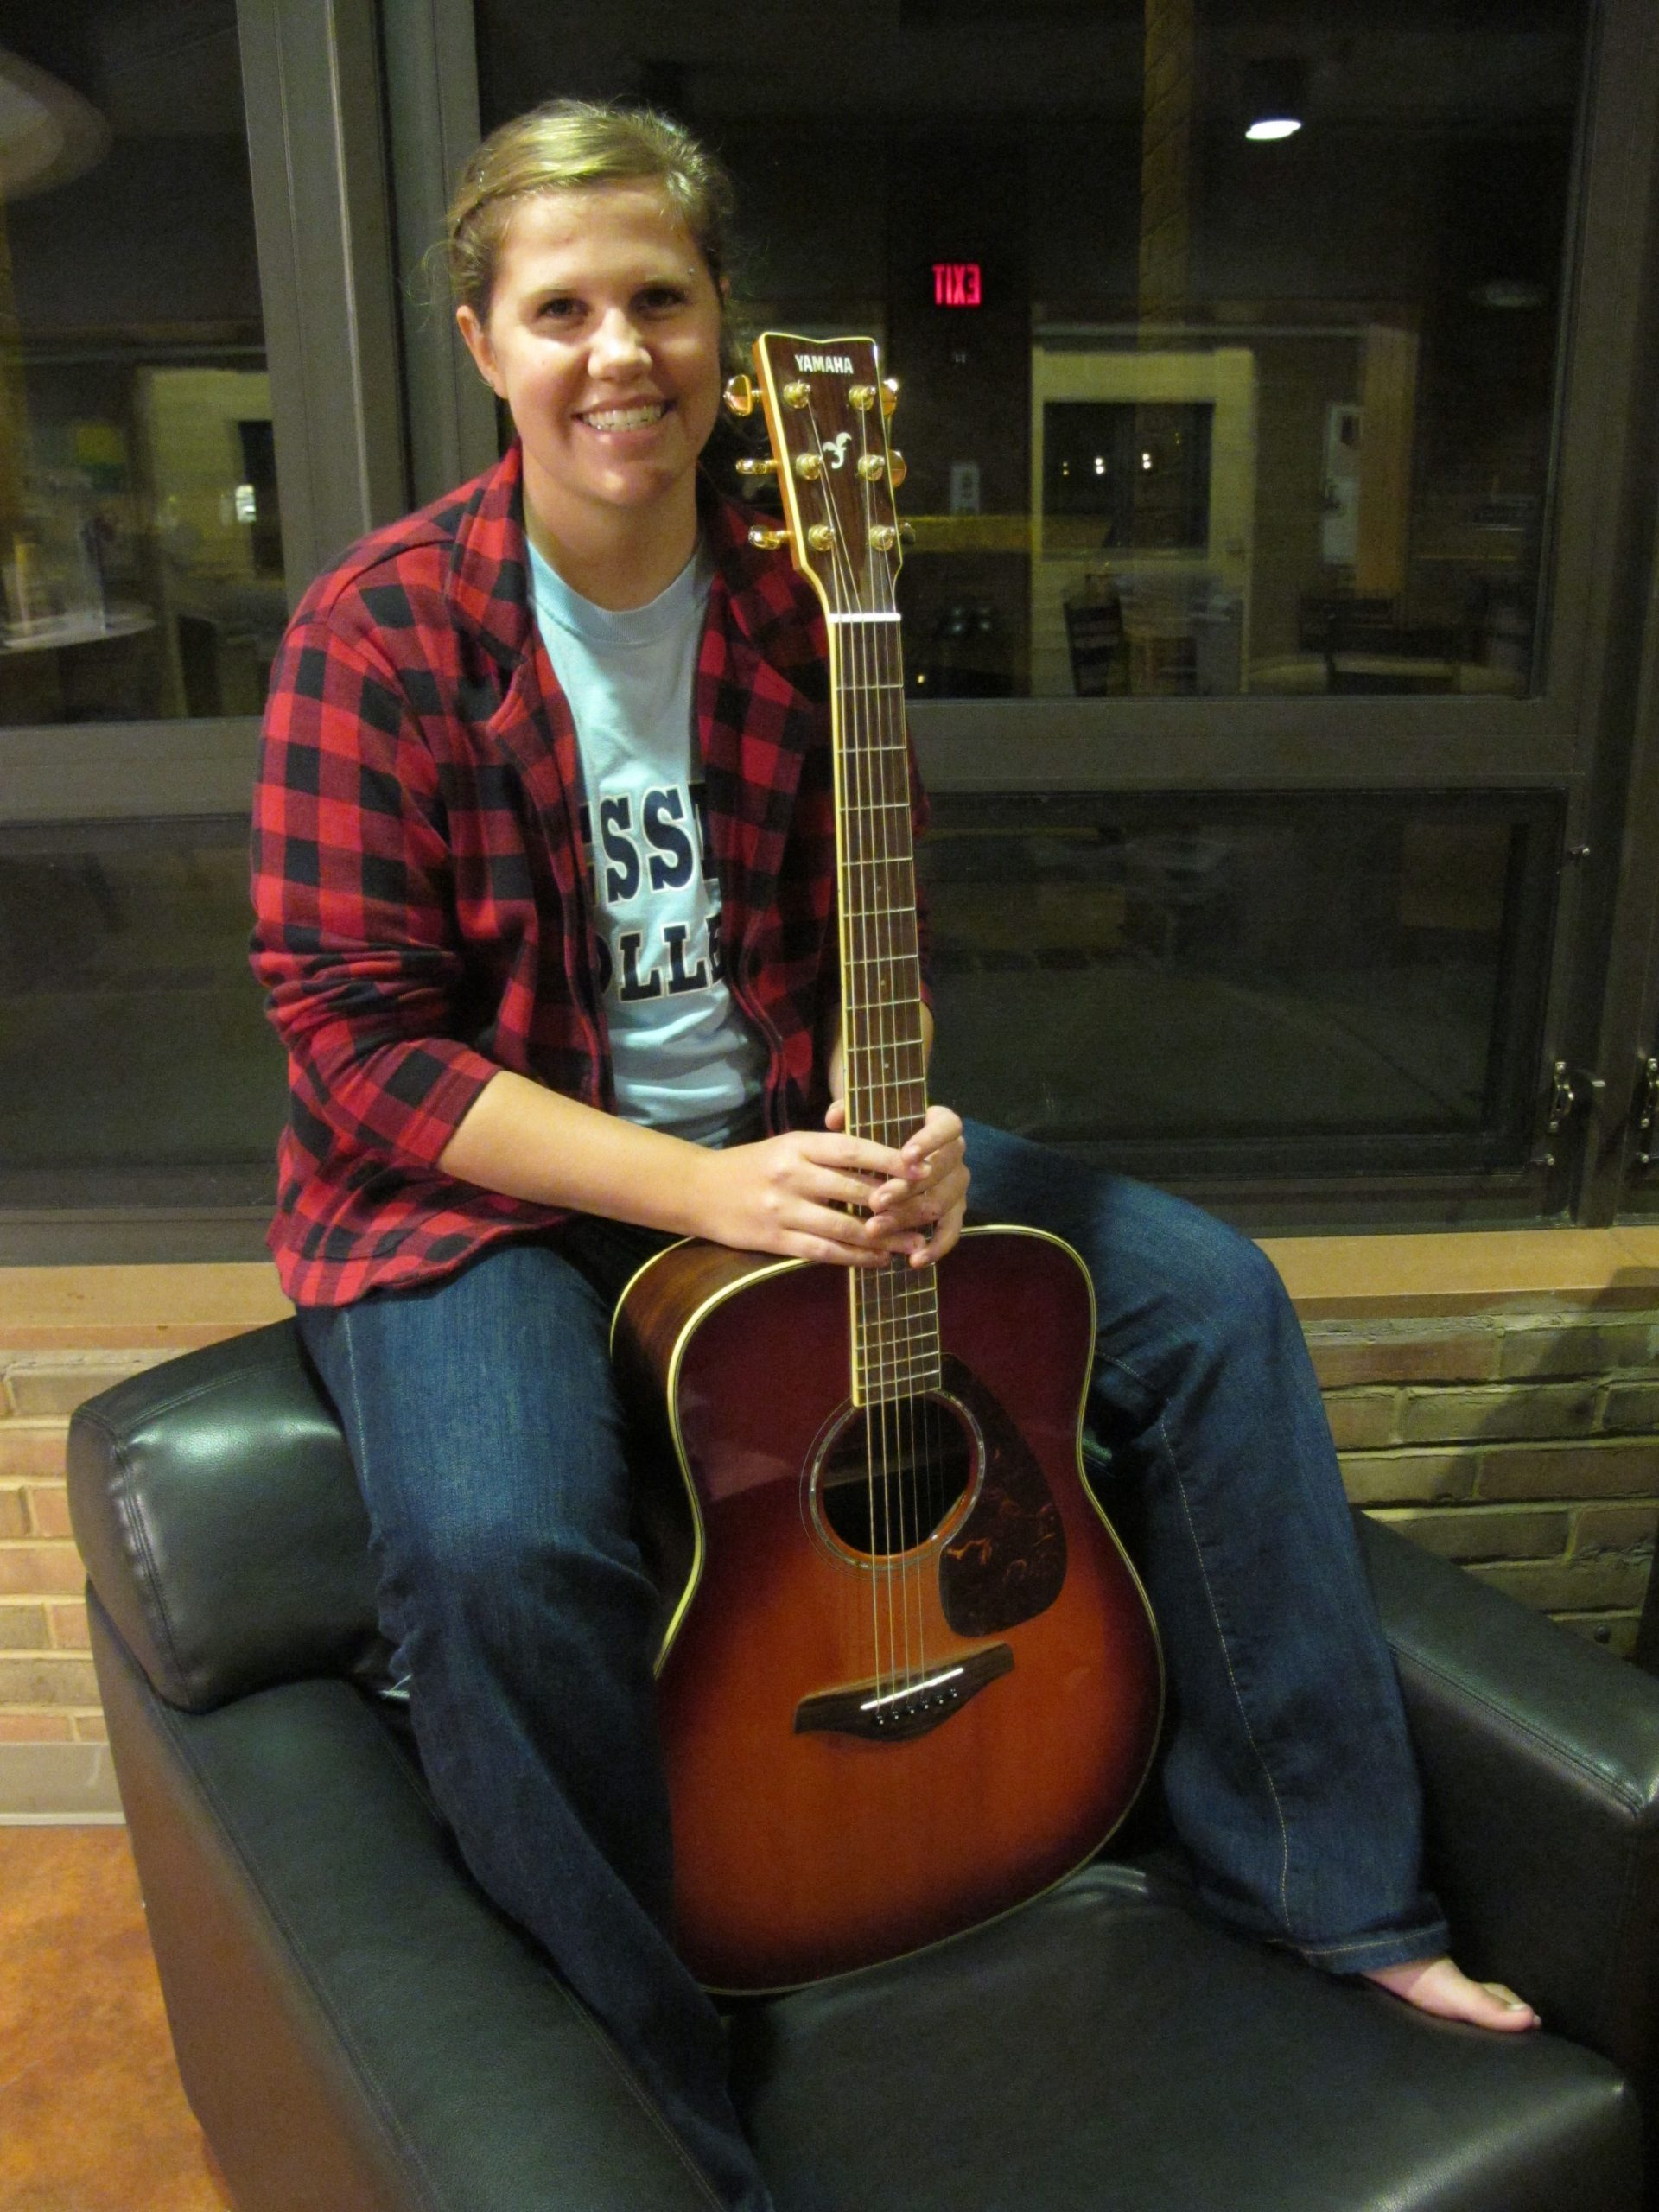 Ana Loucks poses in Java for a picture with her guitar